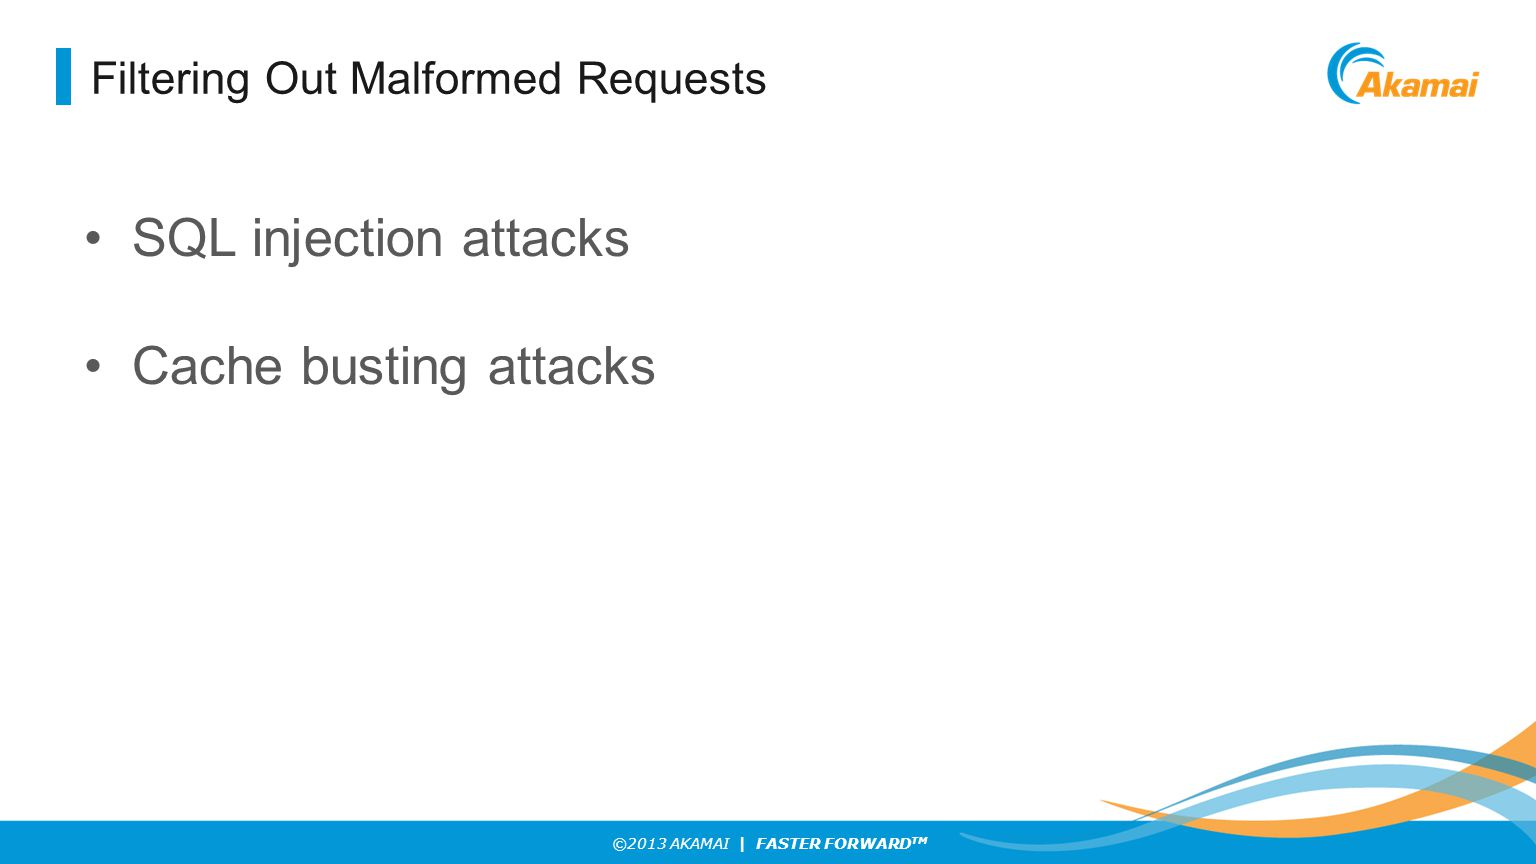 ©2013 AKAMAI | FASTER FORWARD TM Filtering Out Malformed Requests SQL injection attacks Cache busting attacks